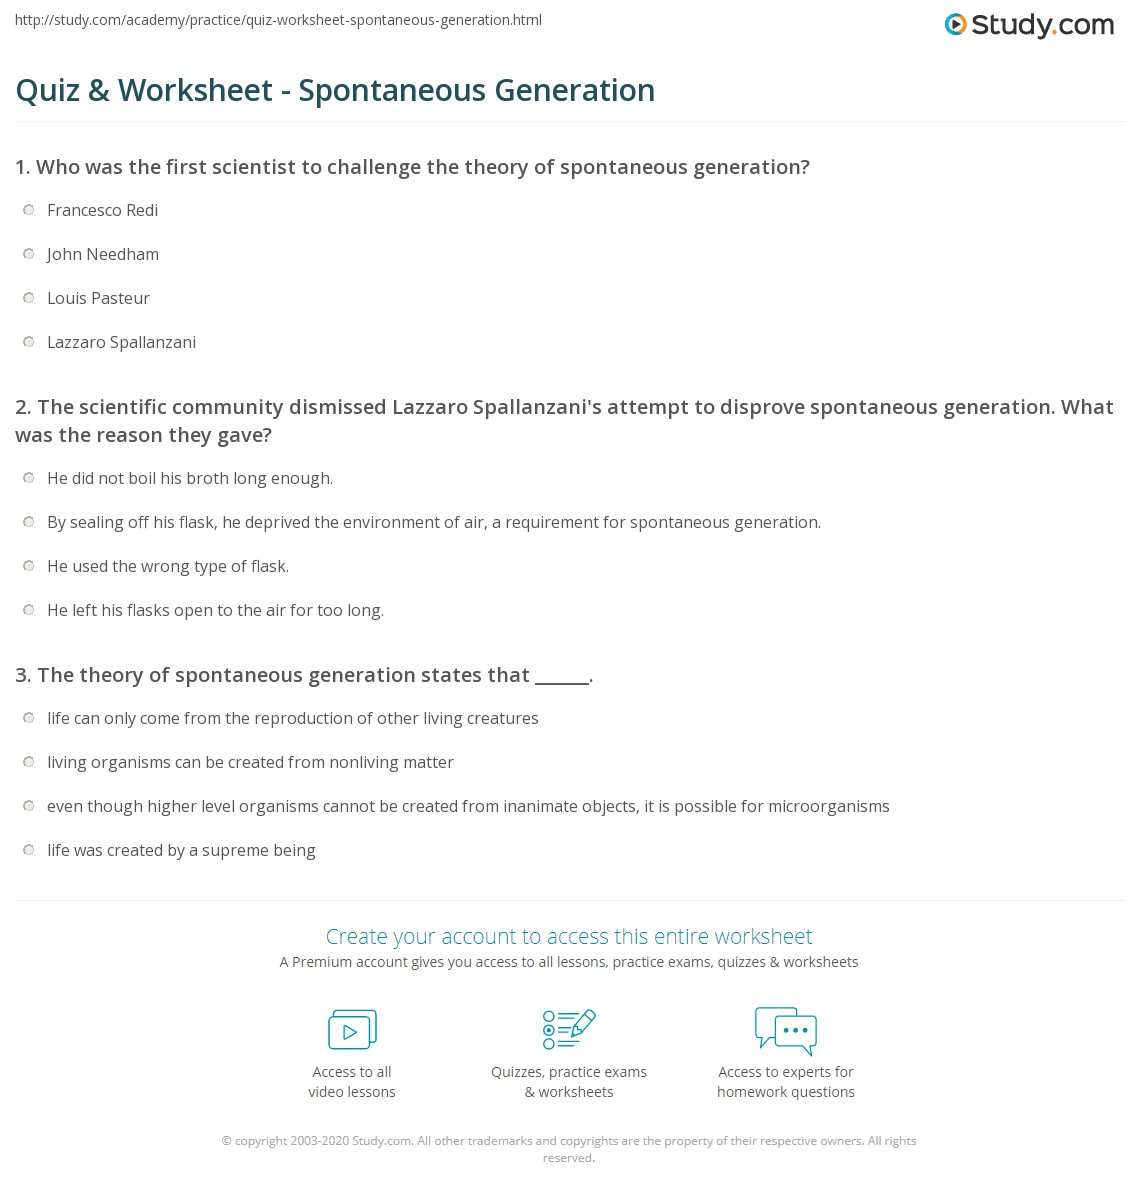 Aldiablosus  Seductive Quiz Amp Worksheet  Spontaneous Generation  Studycom With Exquisite Print Spontaneous Generation Definition Theory Amp Examples Worksheet With Lovely Turbotap Financial Planning Worksheet Also Multiplication Practice Worksheet In Addition Number Word Worksheets And Clocks Worksheets As Well As Genetic Crosses Worksheet Additionally Th Grade Fractions Worksheets From Studycom With Aldiablosus  Exquisite Quiz Amp Worksheet  Spontaneous Generation  Studycom With Lovely Print Spontaneous Generation Definition Theory Amp Examples Worksheet And Seductive Turbotap Financial Planning Worksheet Also Multiplication Practice Worksheet In Addition Number Word Worksheets From Studycom